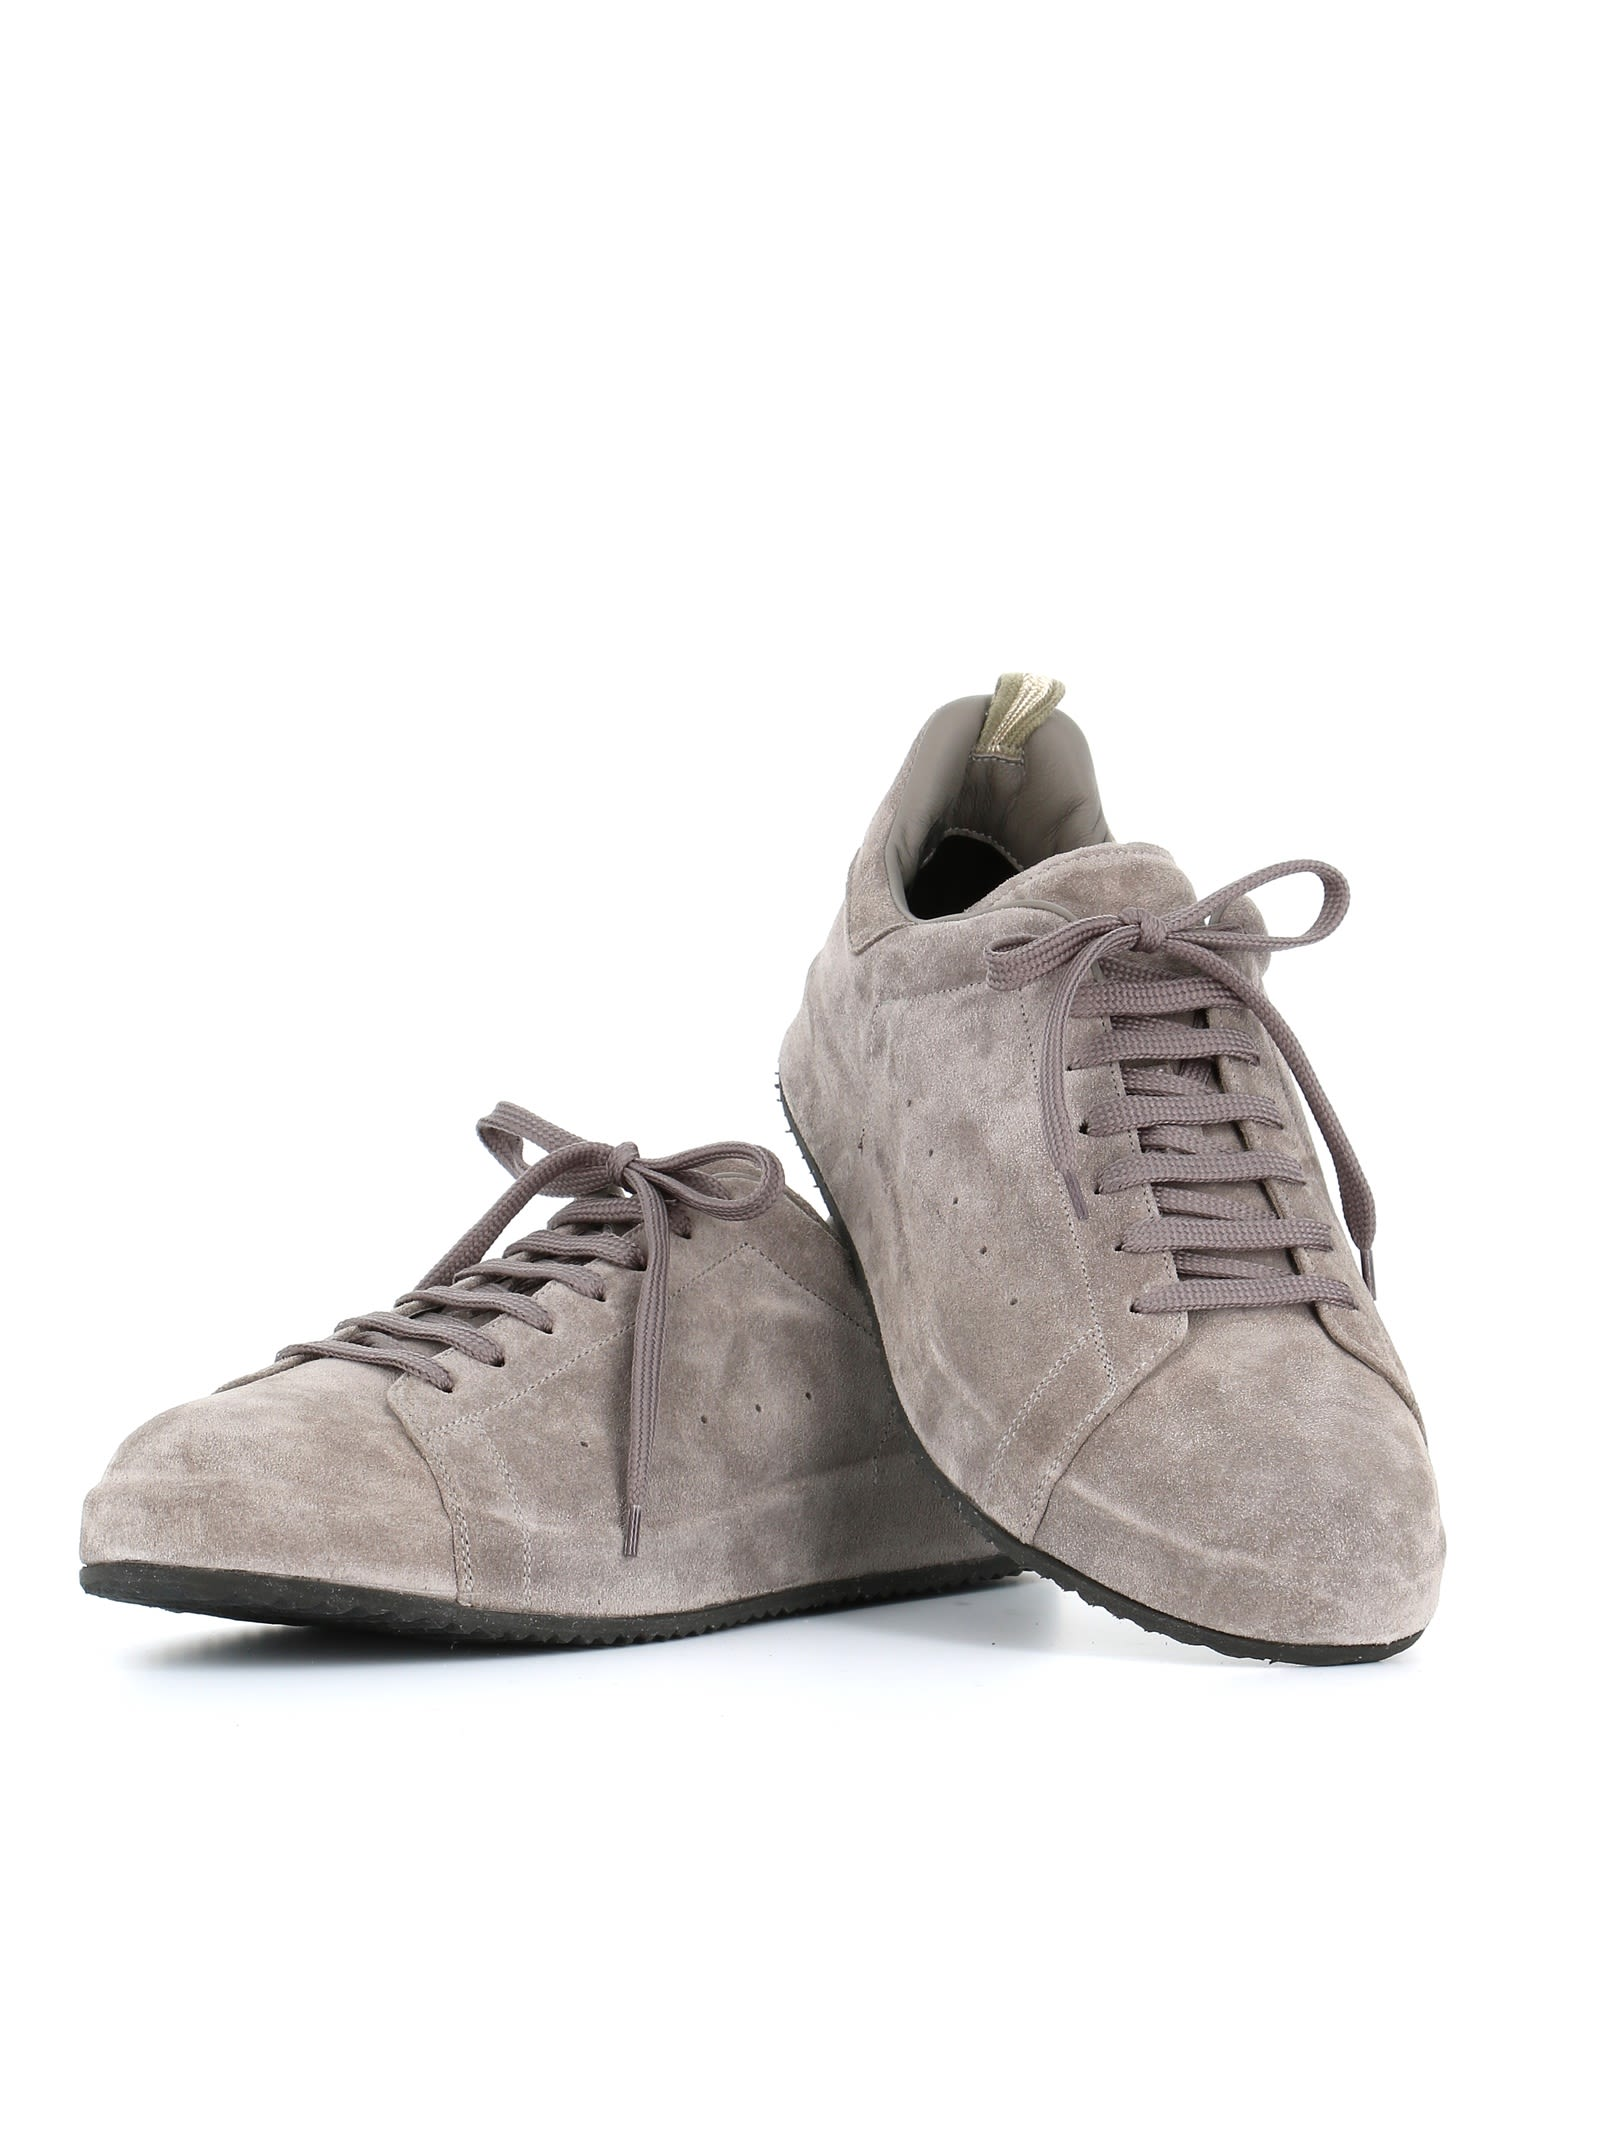 Officine creative Twace sneakers vP78K78f70